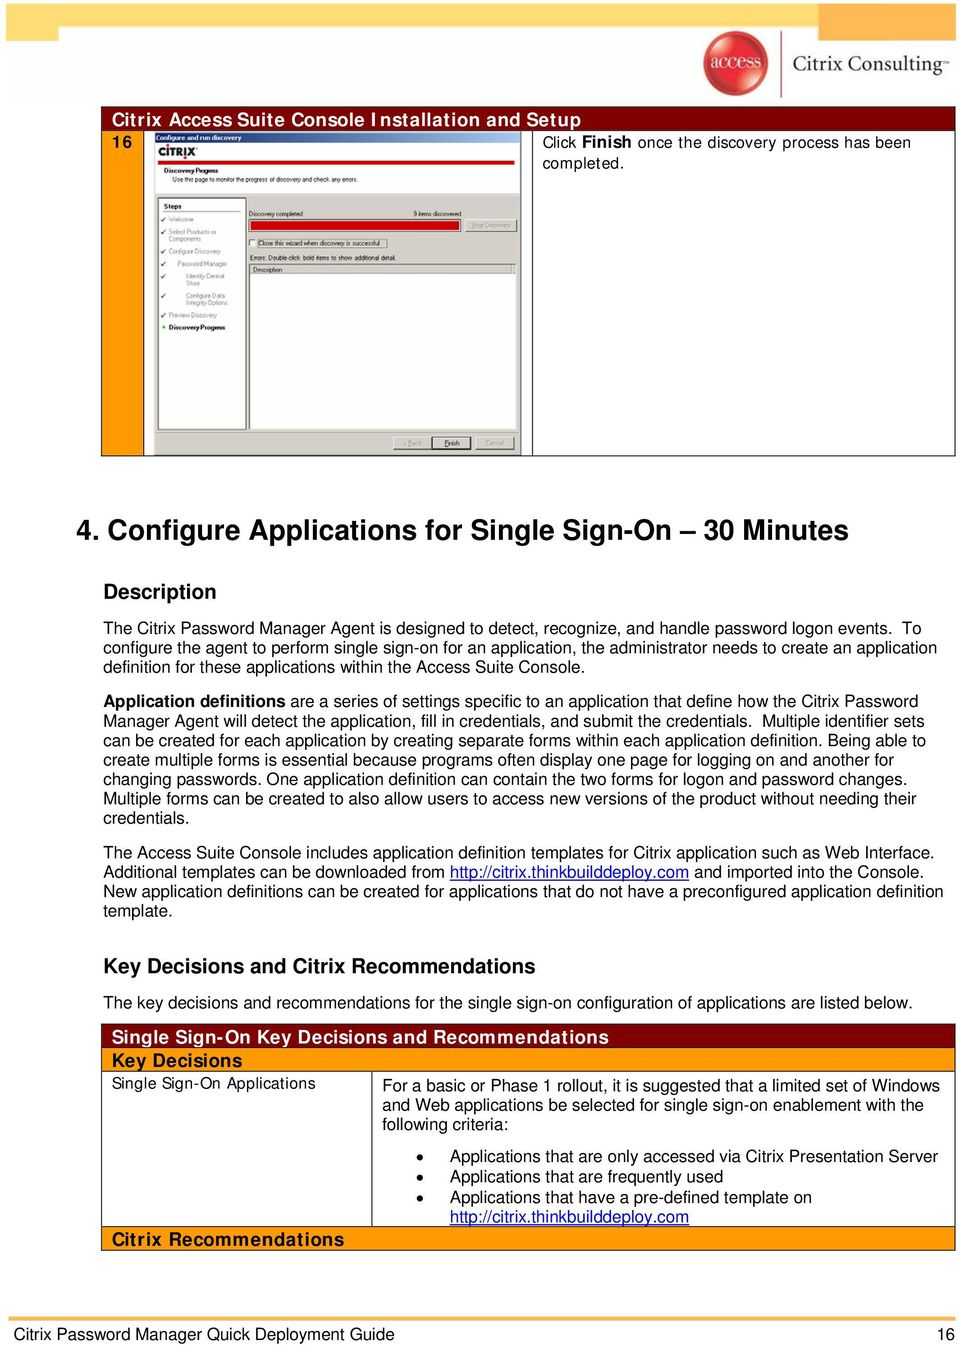 To configure the agent to perform single sign-on for an application, the administrator needs to create an application definition for these applications within the Access Suite Console.